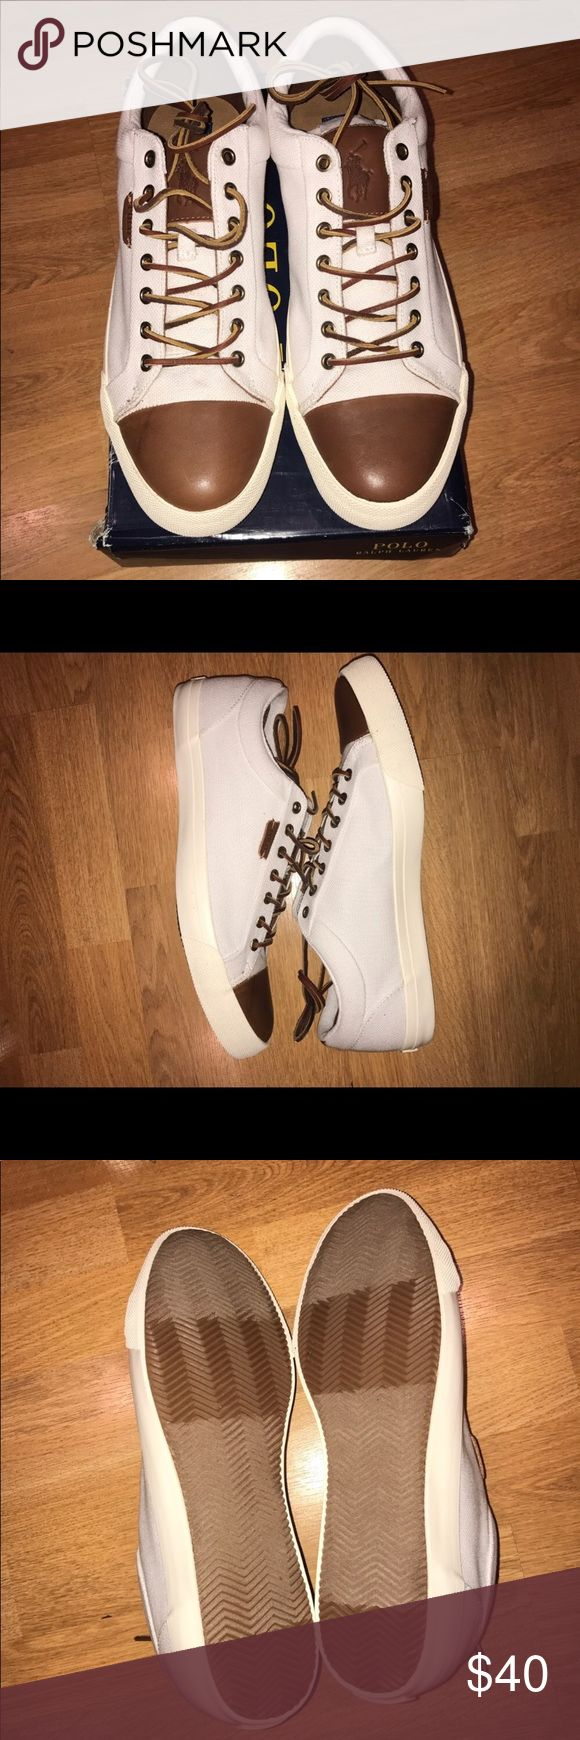 Polo Ralph Lauren men's size 13 shoes Brand new White and brown mens shoes Polo by Ralph Lauren Shoes Sneakers